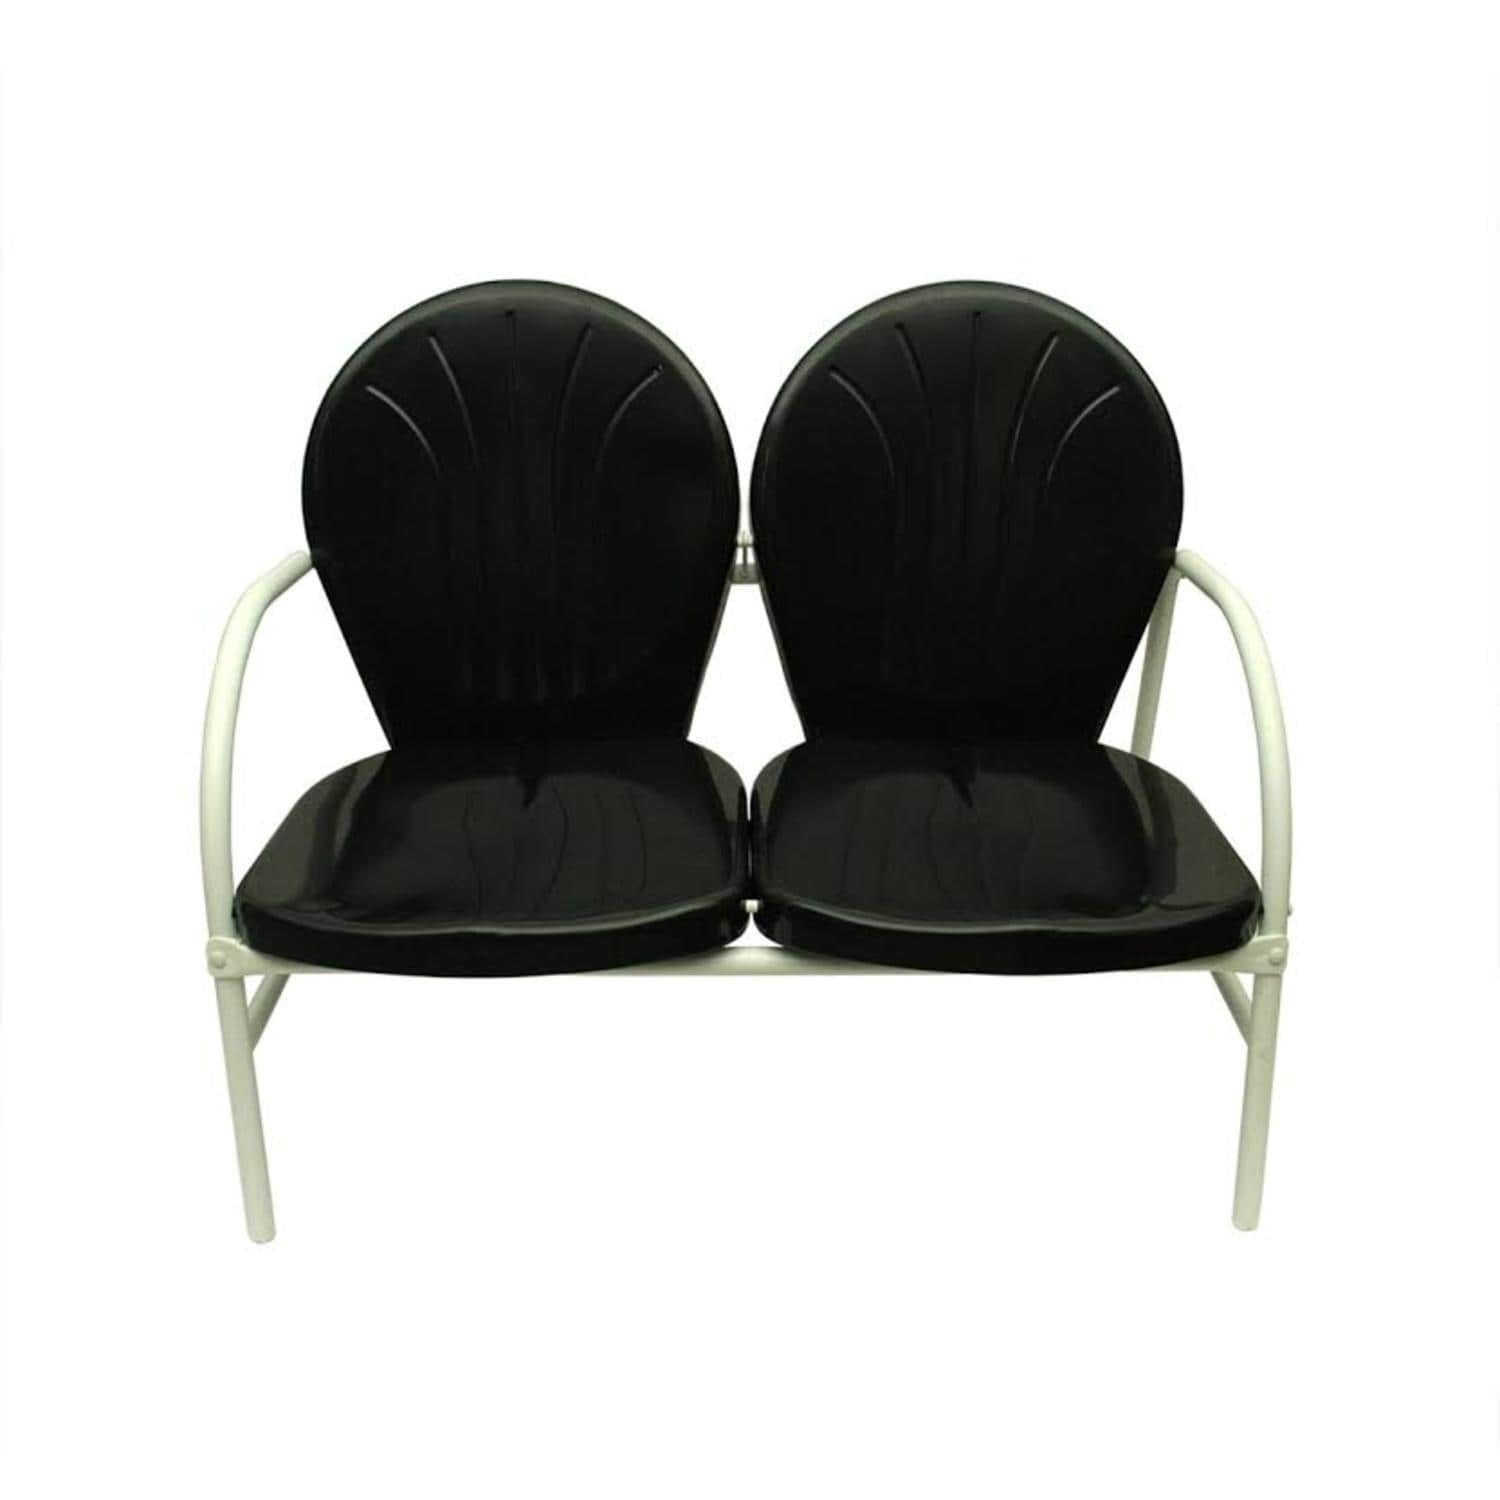 Genial Black And White Retro Metal Tulip 2 Seat Double Chair, Patio Furniture  (Steel